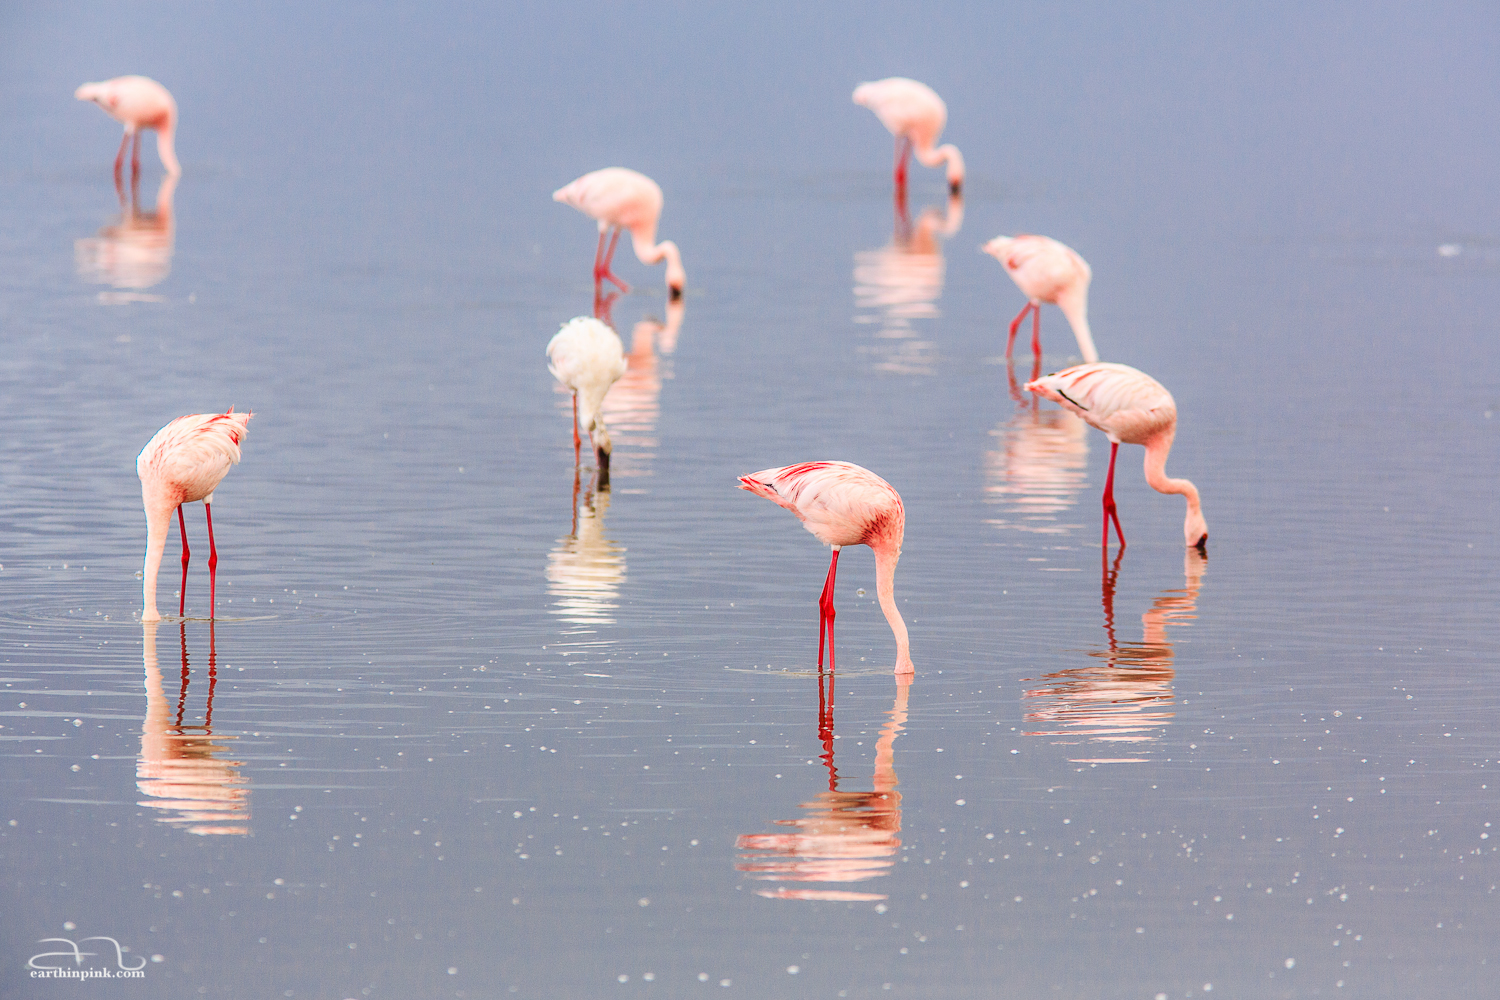 Flamingo reflections on a rainy day in Serengeti National Park, Tanzania